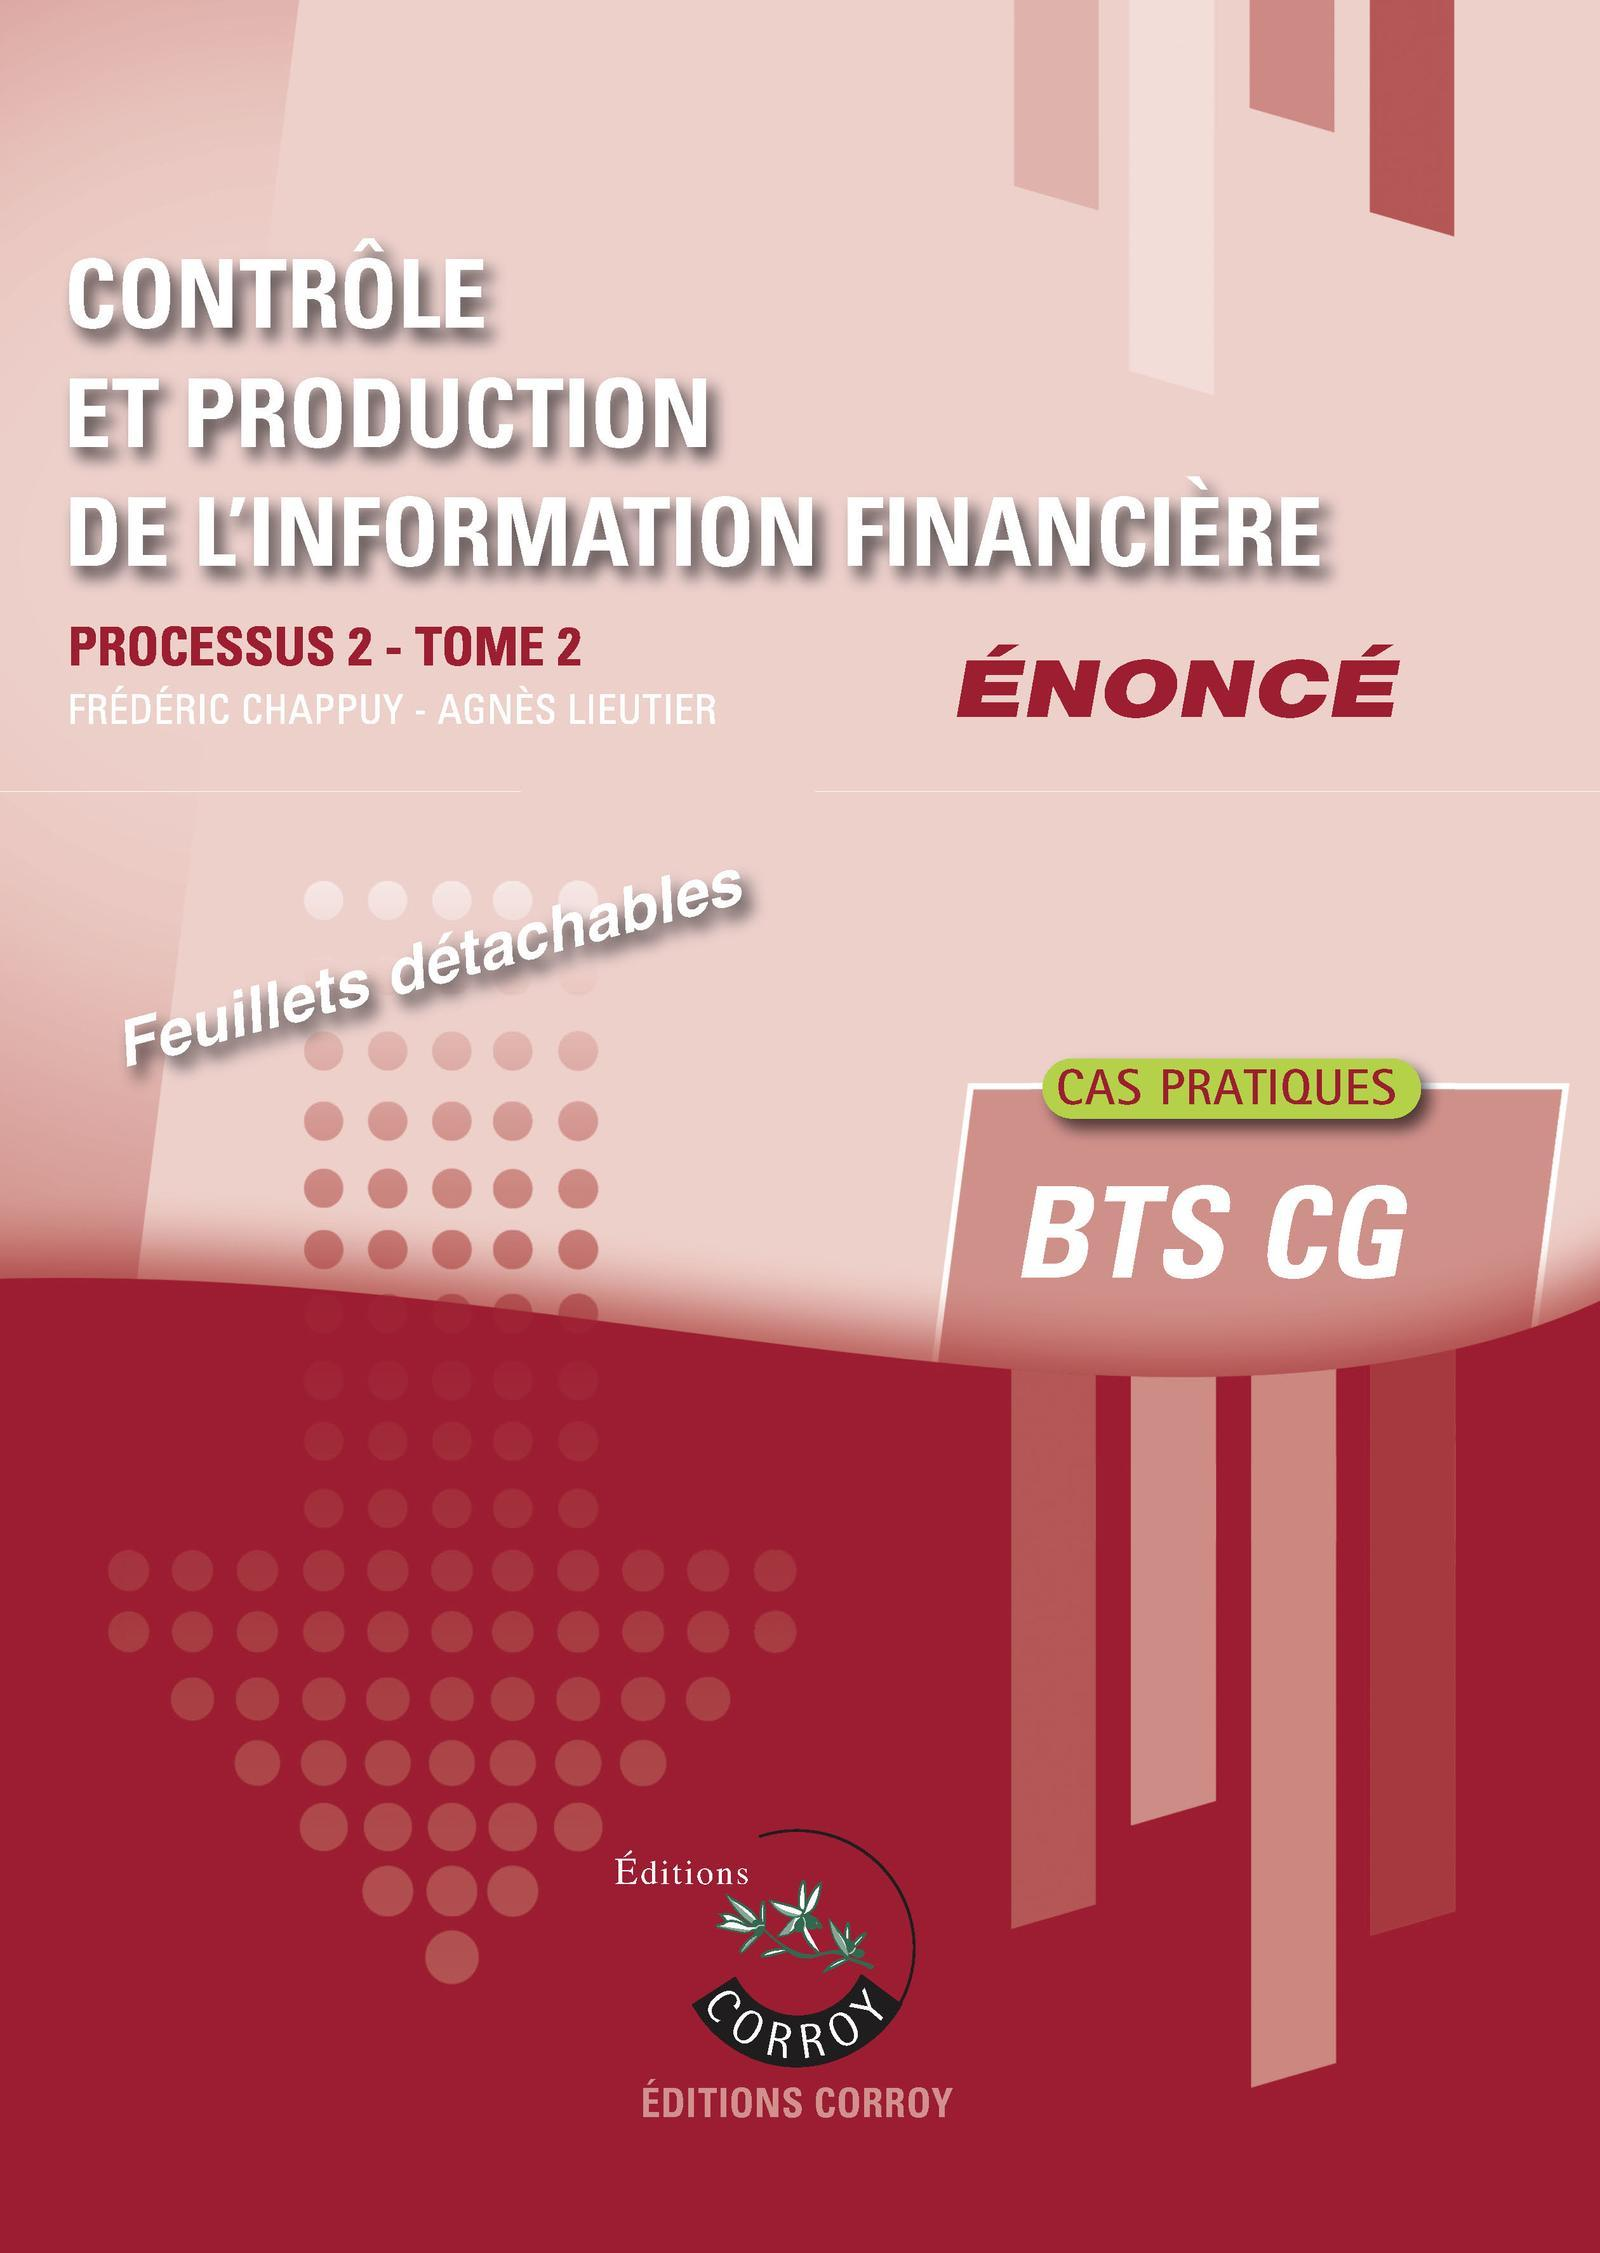 CONTROLE ET PRODUCTION DE L'INFORMATION FINANCIERE T2 - ENONCE